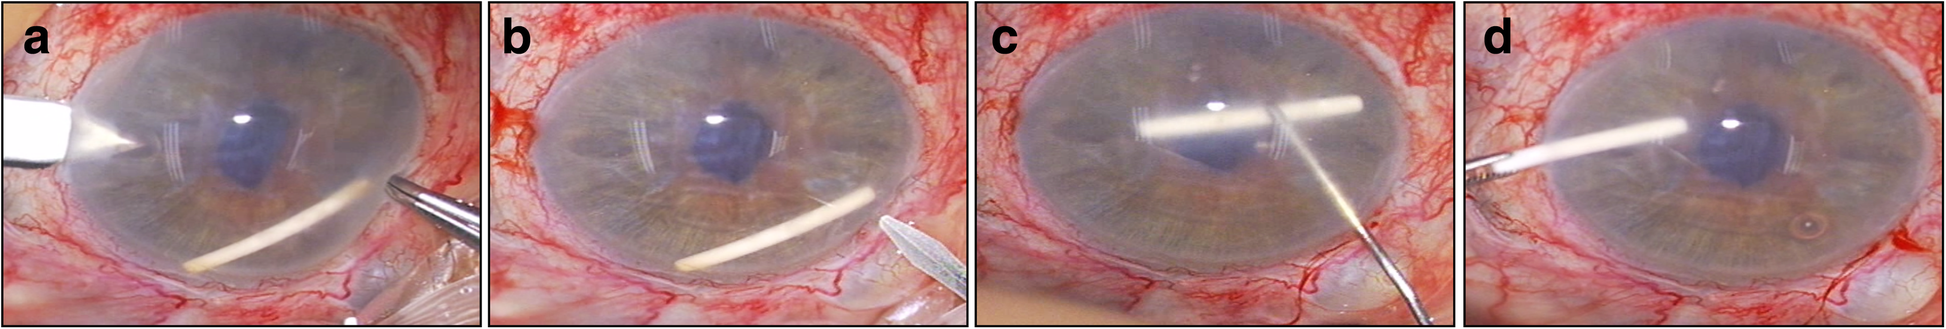 Risk factors for and management of anterior chamber